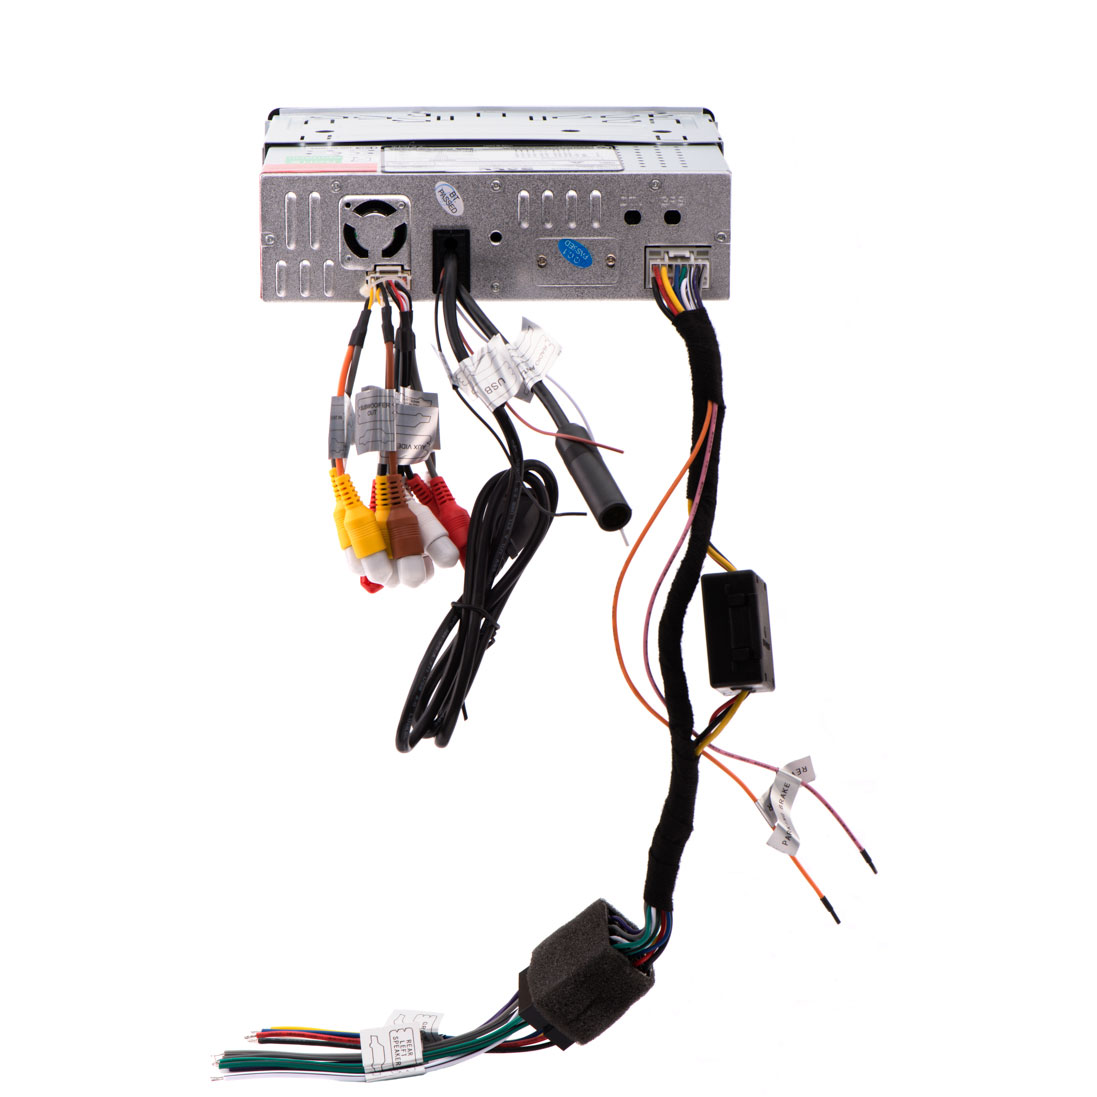 Dual Model Cd770 Wiring Harness 20 Pin Auto Yale Diagram Fork Lift Gdp080dncge Boss Audio 25 Images